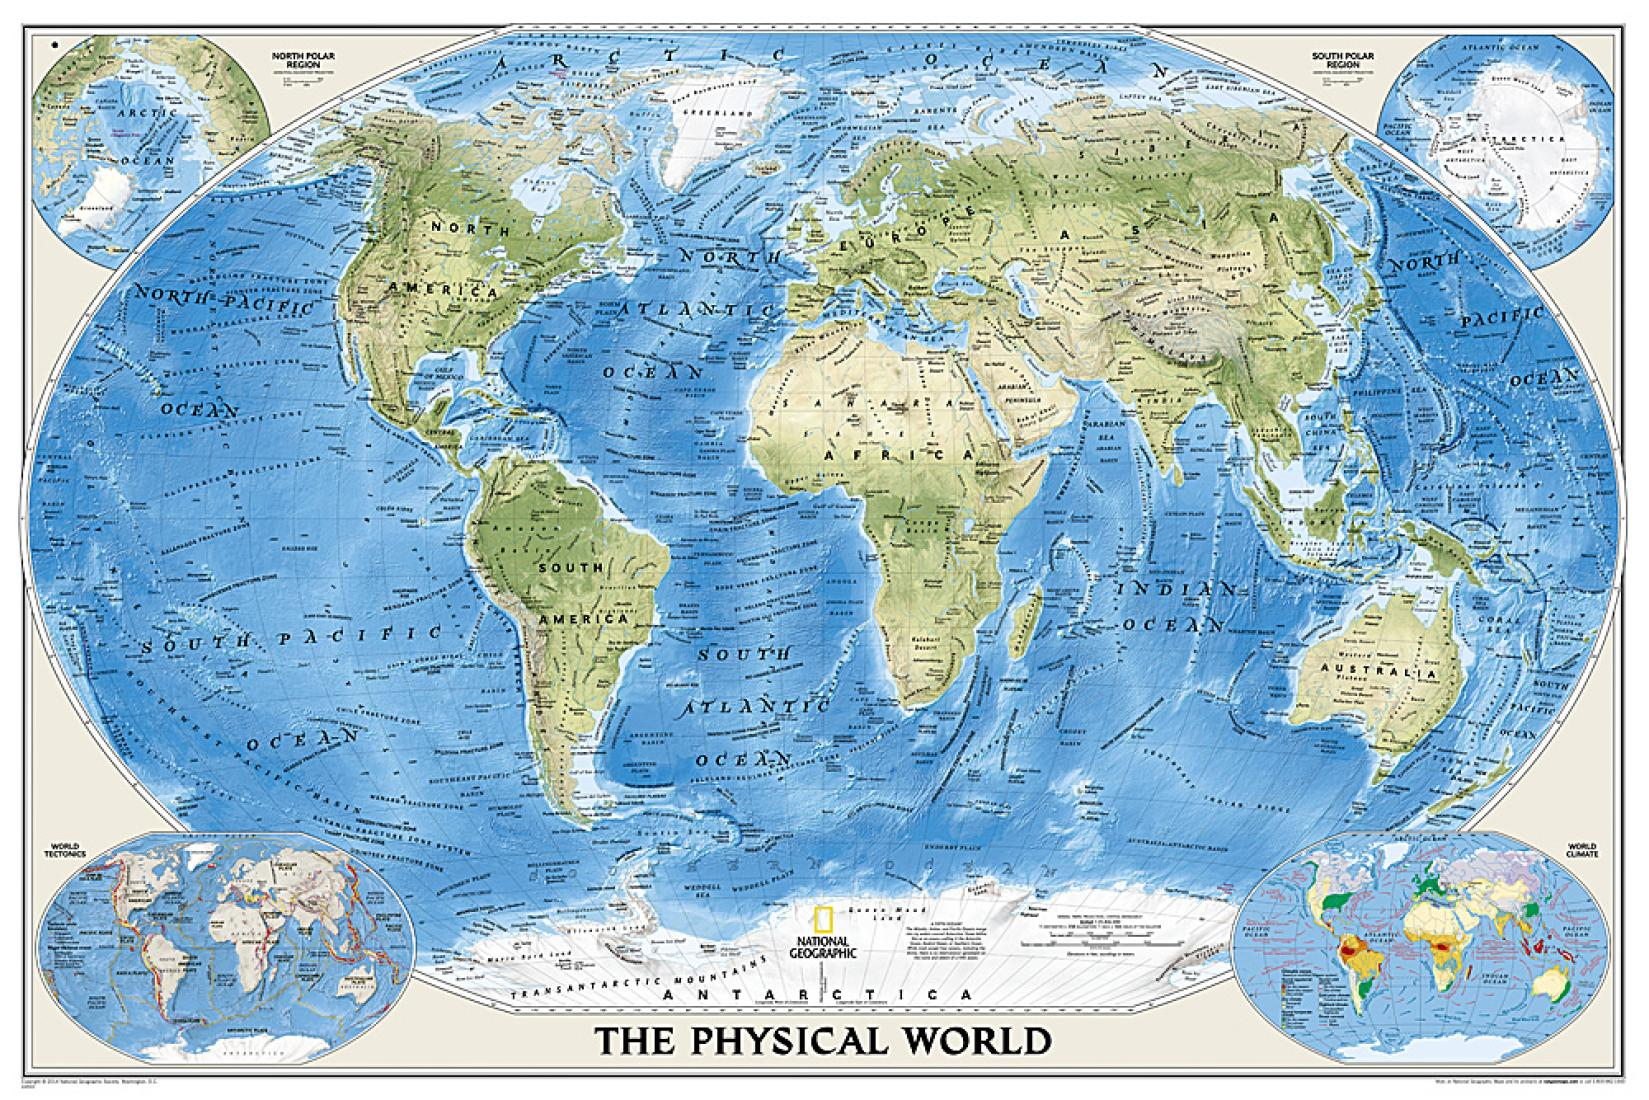 PhysicalOcean Floor Tubed By National Geographic Maps - The physical world map oceans